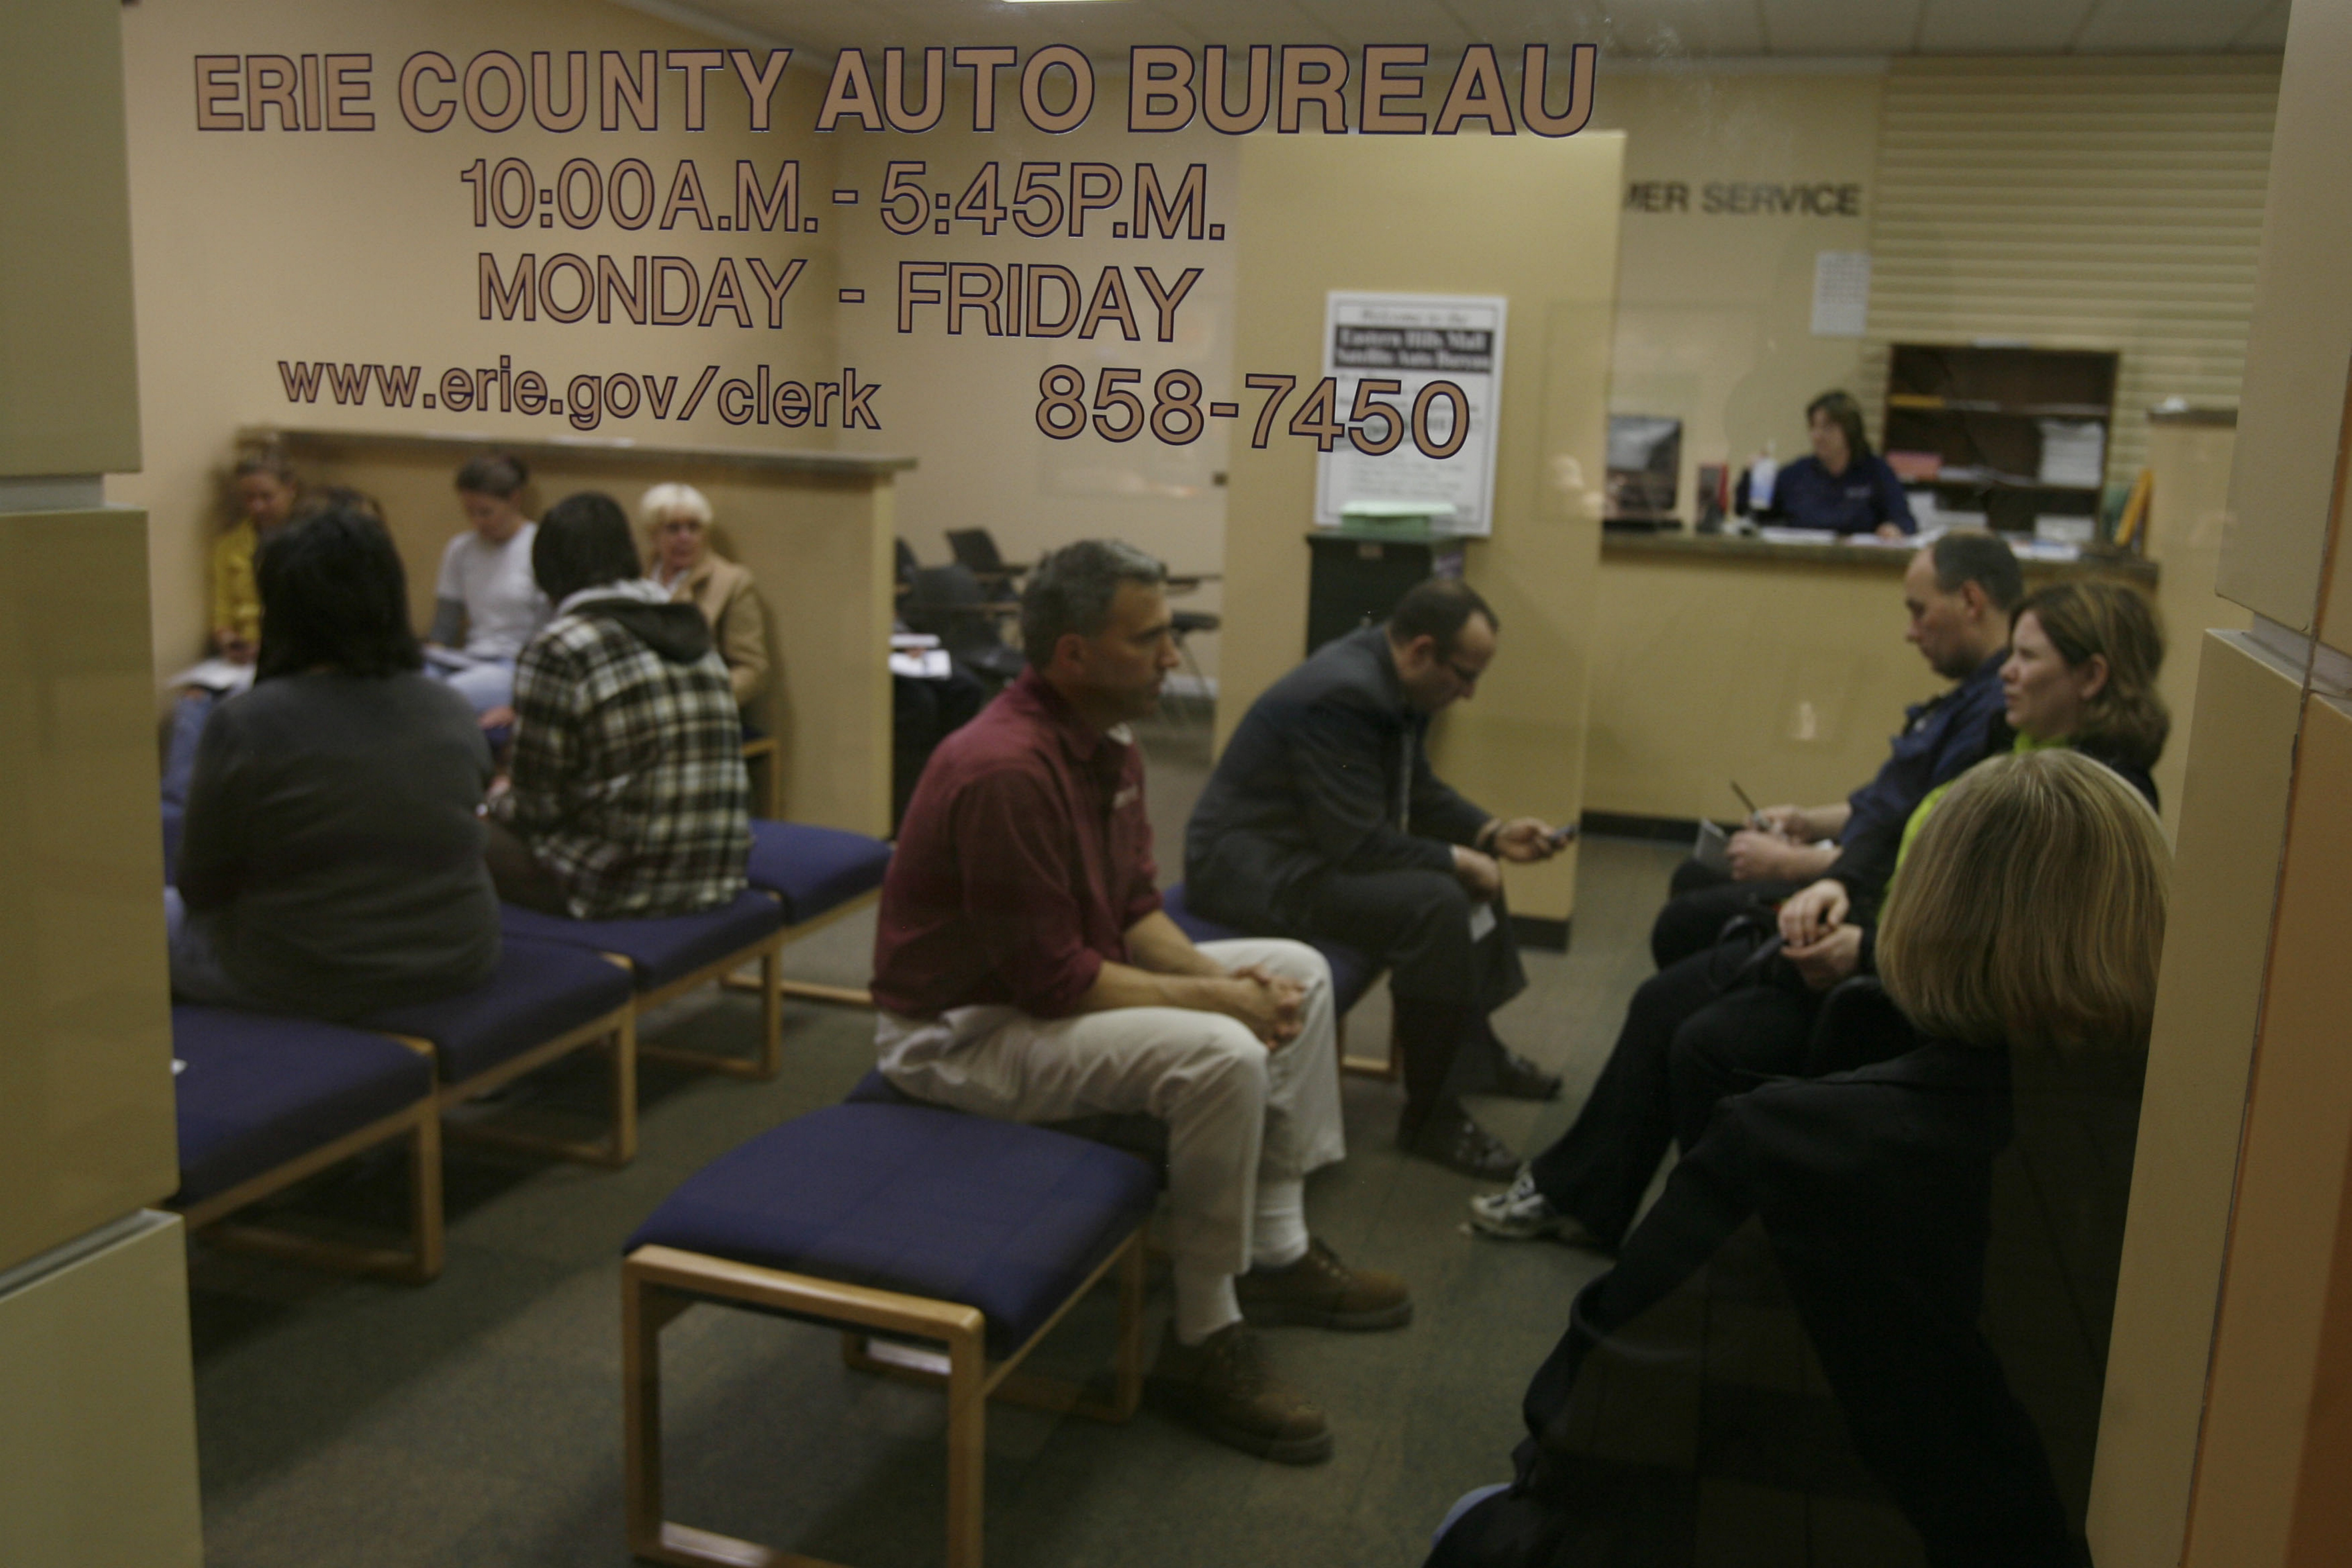 Allowing people to sign up for the state Donate Organ and Tissue Donor Registry in Erie County Auto Bureaus has resulted in a 62 percent increase in the number of people signed up since April 2014. (News file photo)